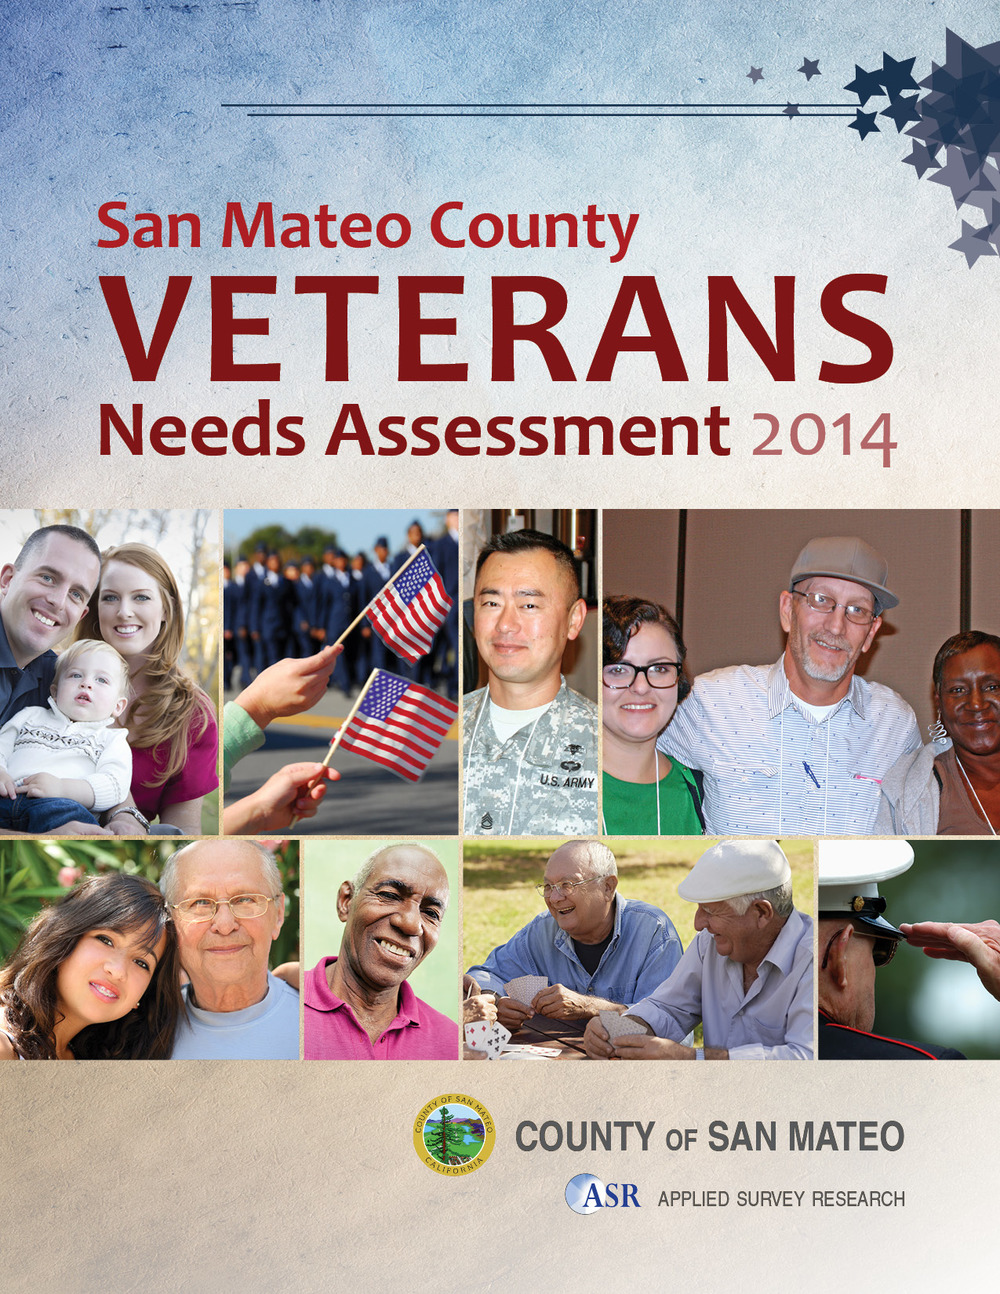 San Mateo County Veterans Needs Assessment